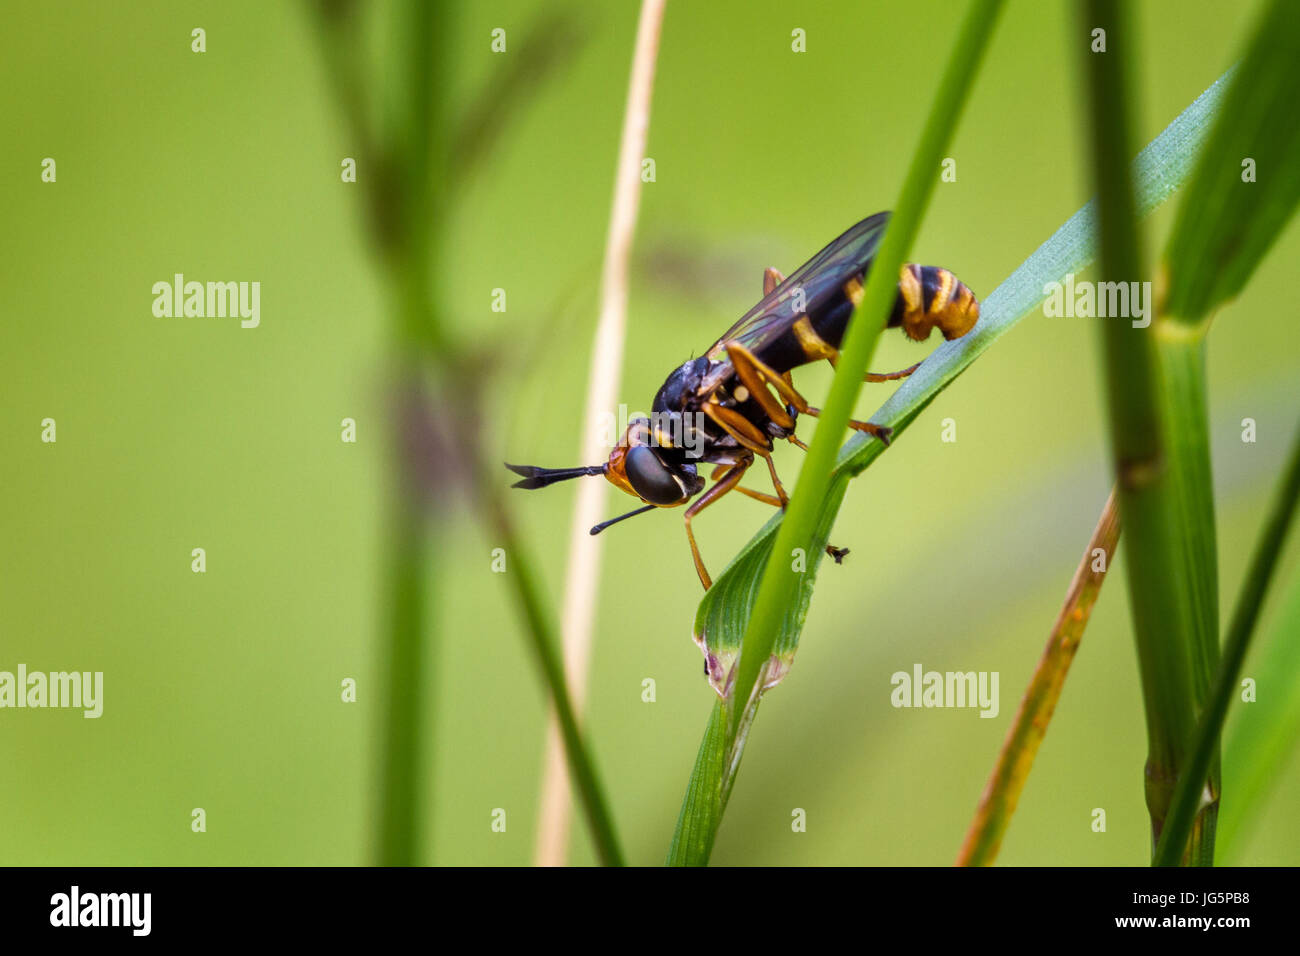 UK wildlife: a wasp mimic, Conops quadrifasciatus is a parasitoid fly whose larvae are internal parasites of bumblebees, - Stock Image